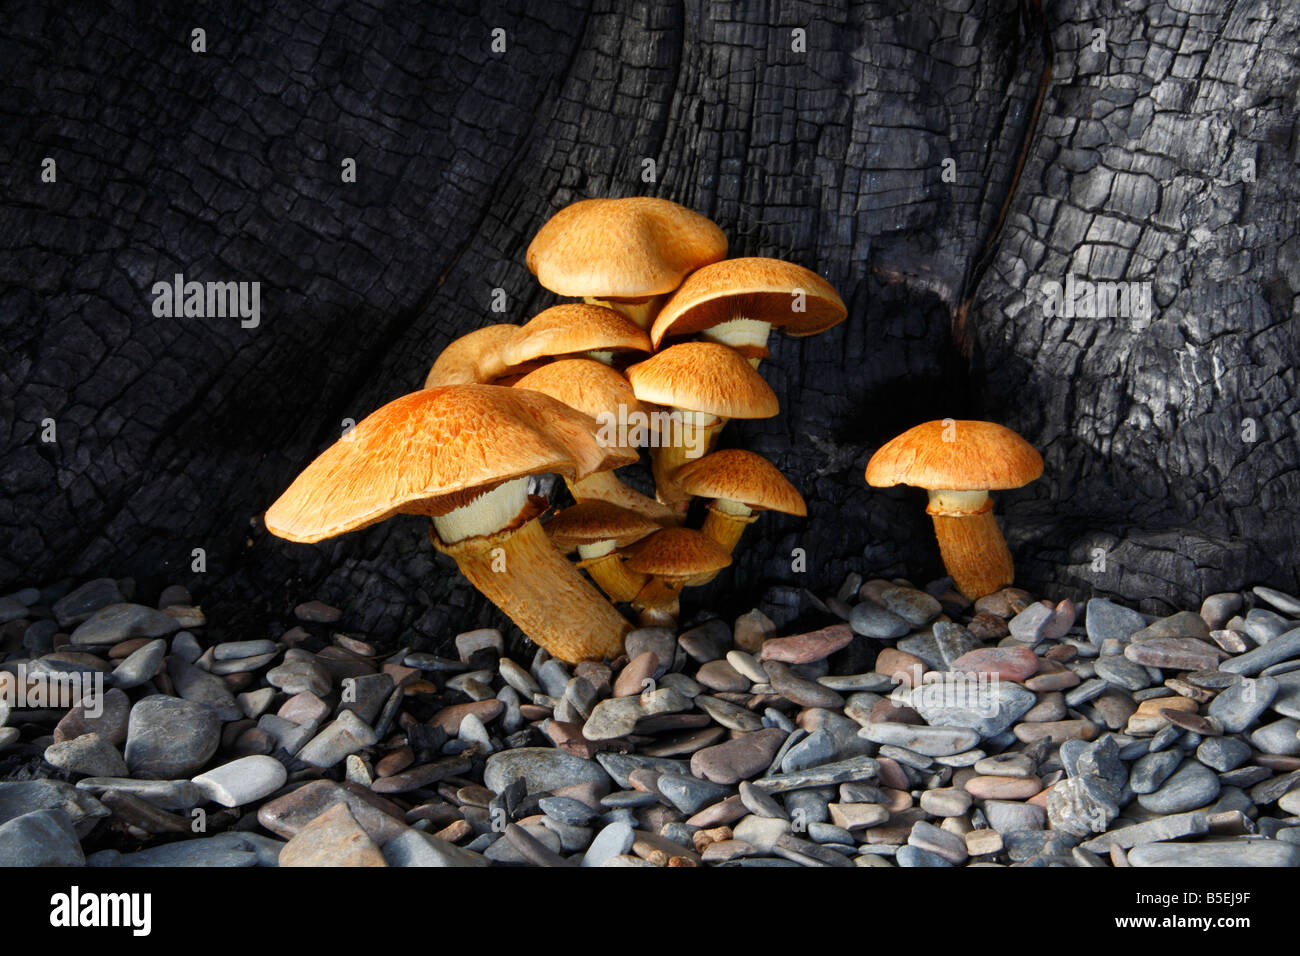 Gymnopilus spectabilis fungi a member of the order Corinariales (family Crepidoceaea) growing out of burnt tree. - Stock Image